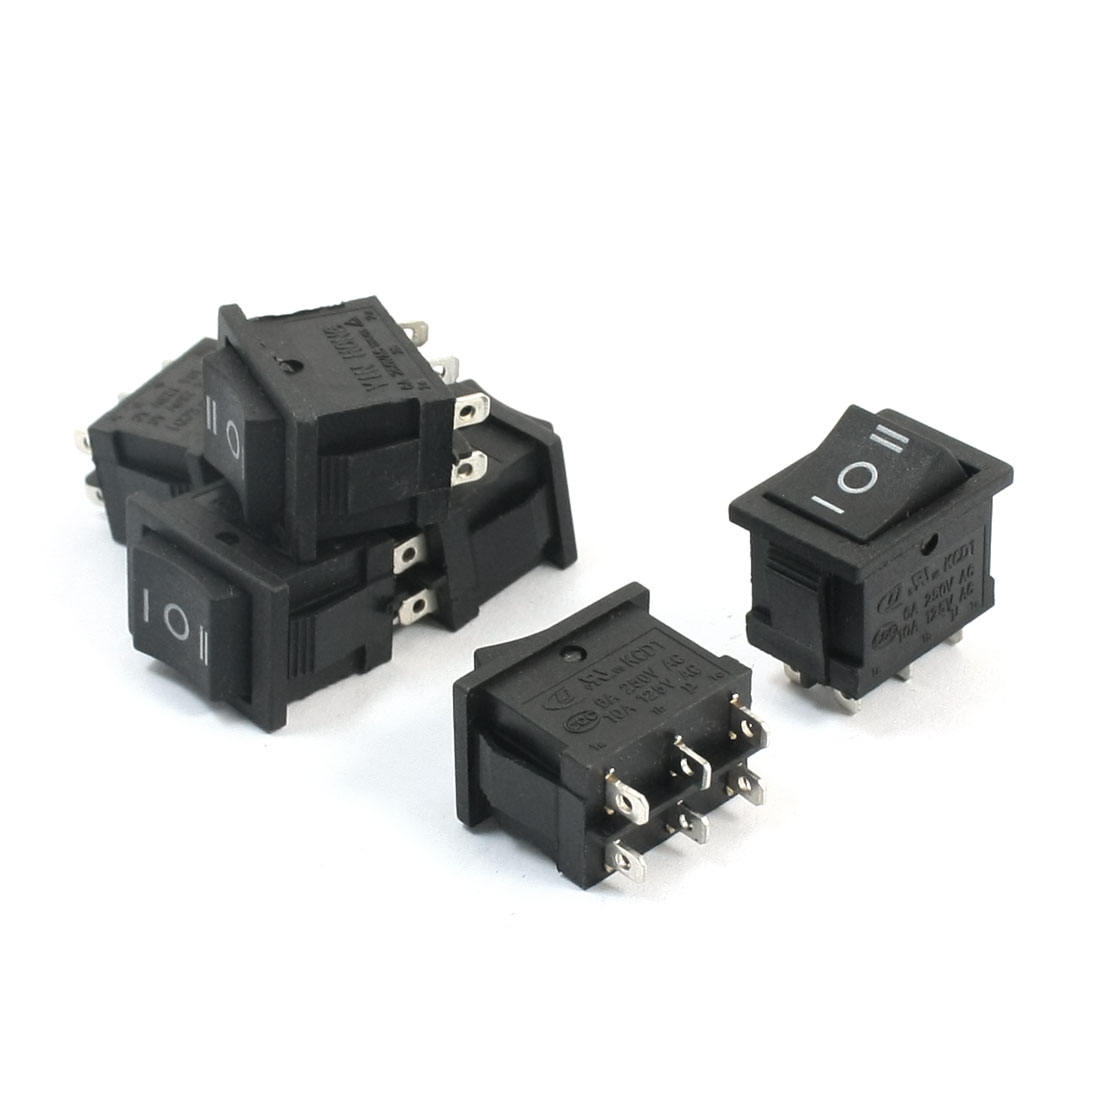 6Pcs Snap in Mount Latching DPDT Rocker Switch AC 250V 6A AC 125V 10A for Car